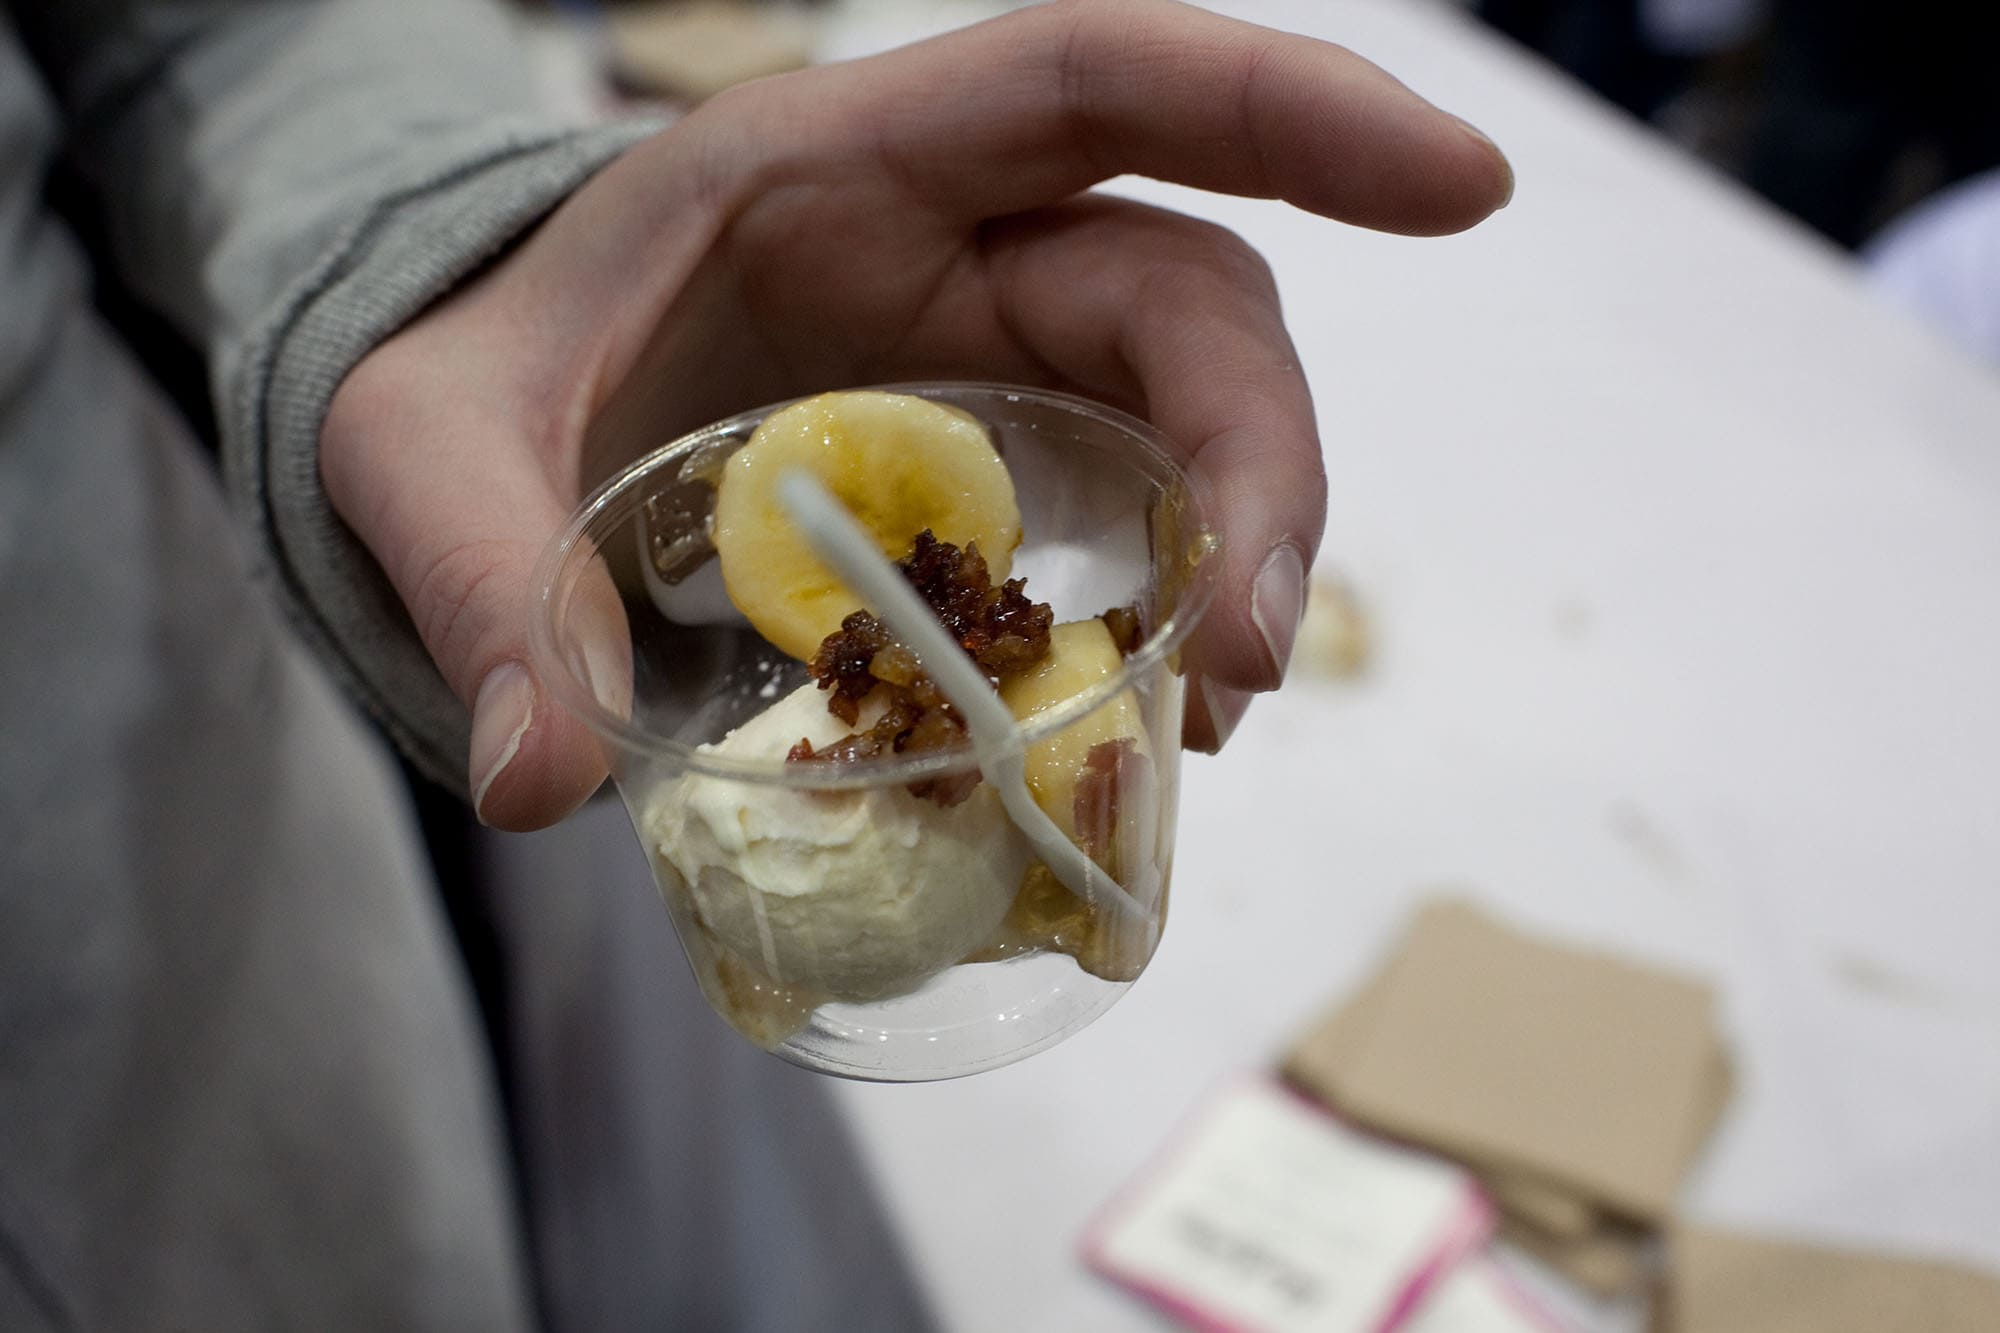 Banana and Bacon's Foster from Black Dog Gelato at Baconfest Chicago